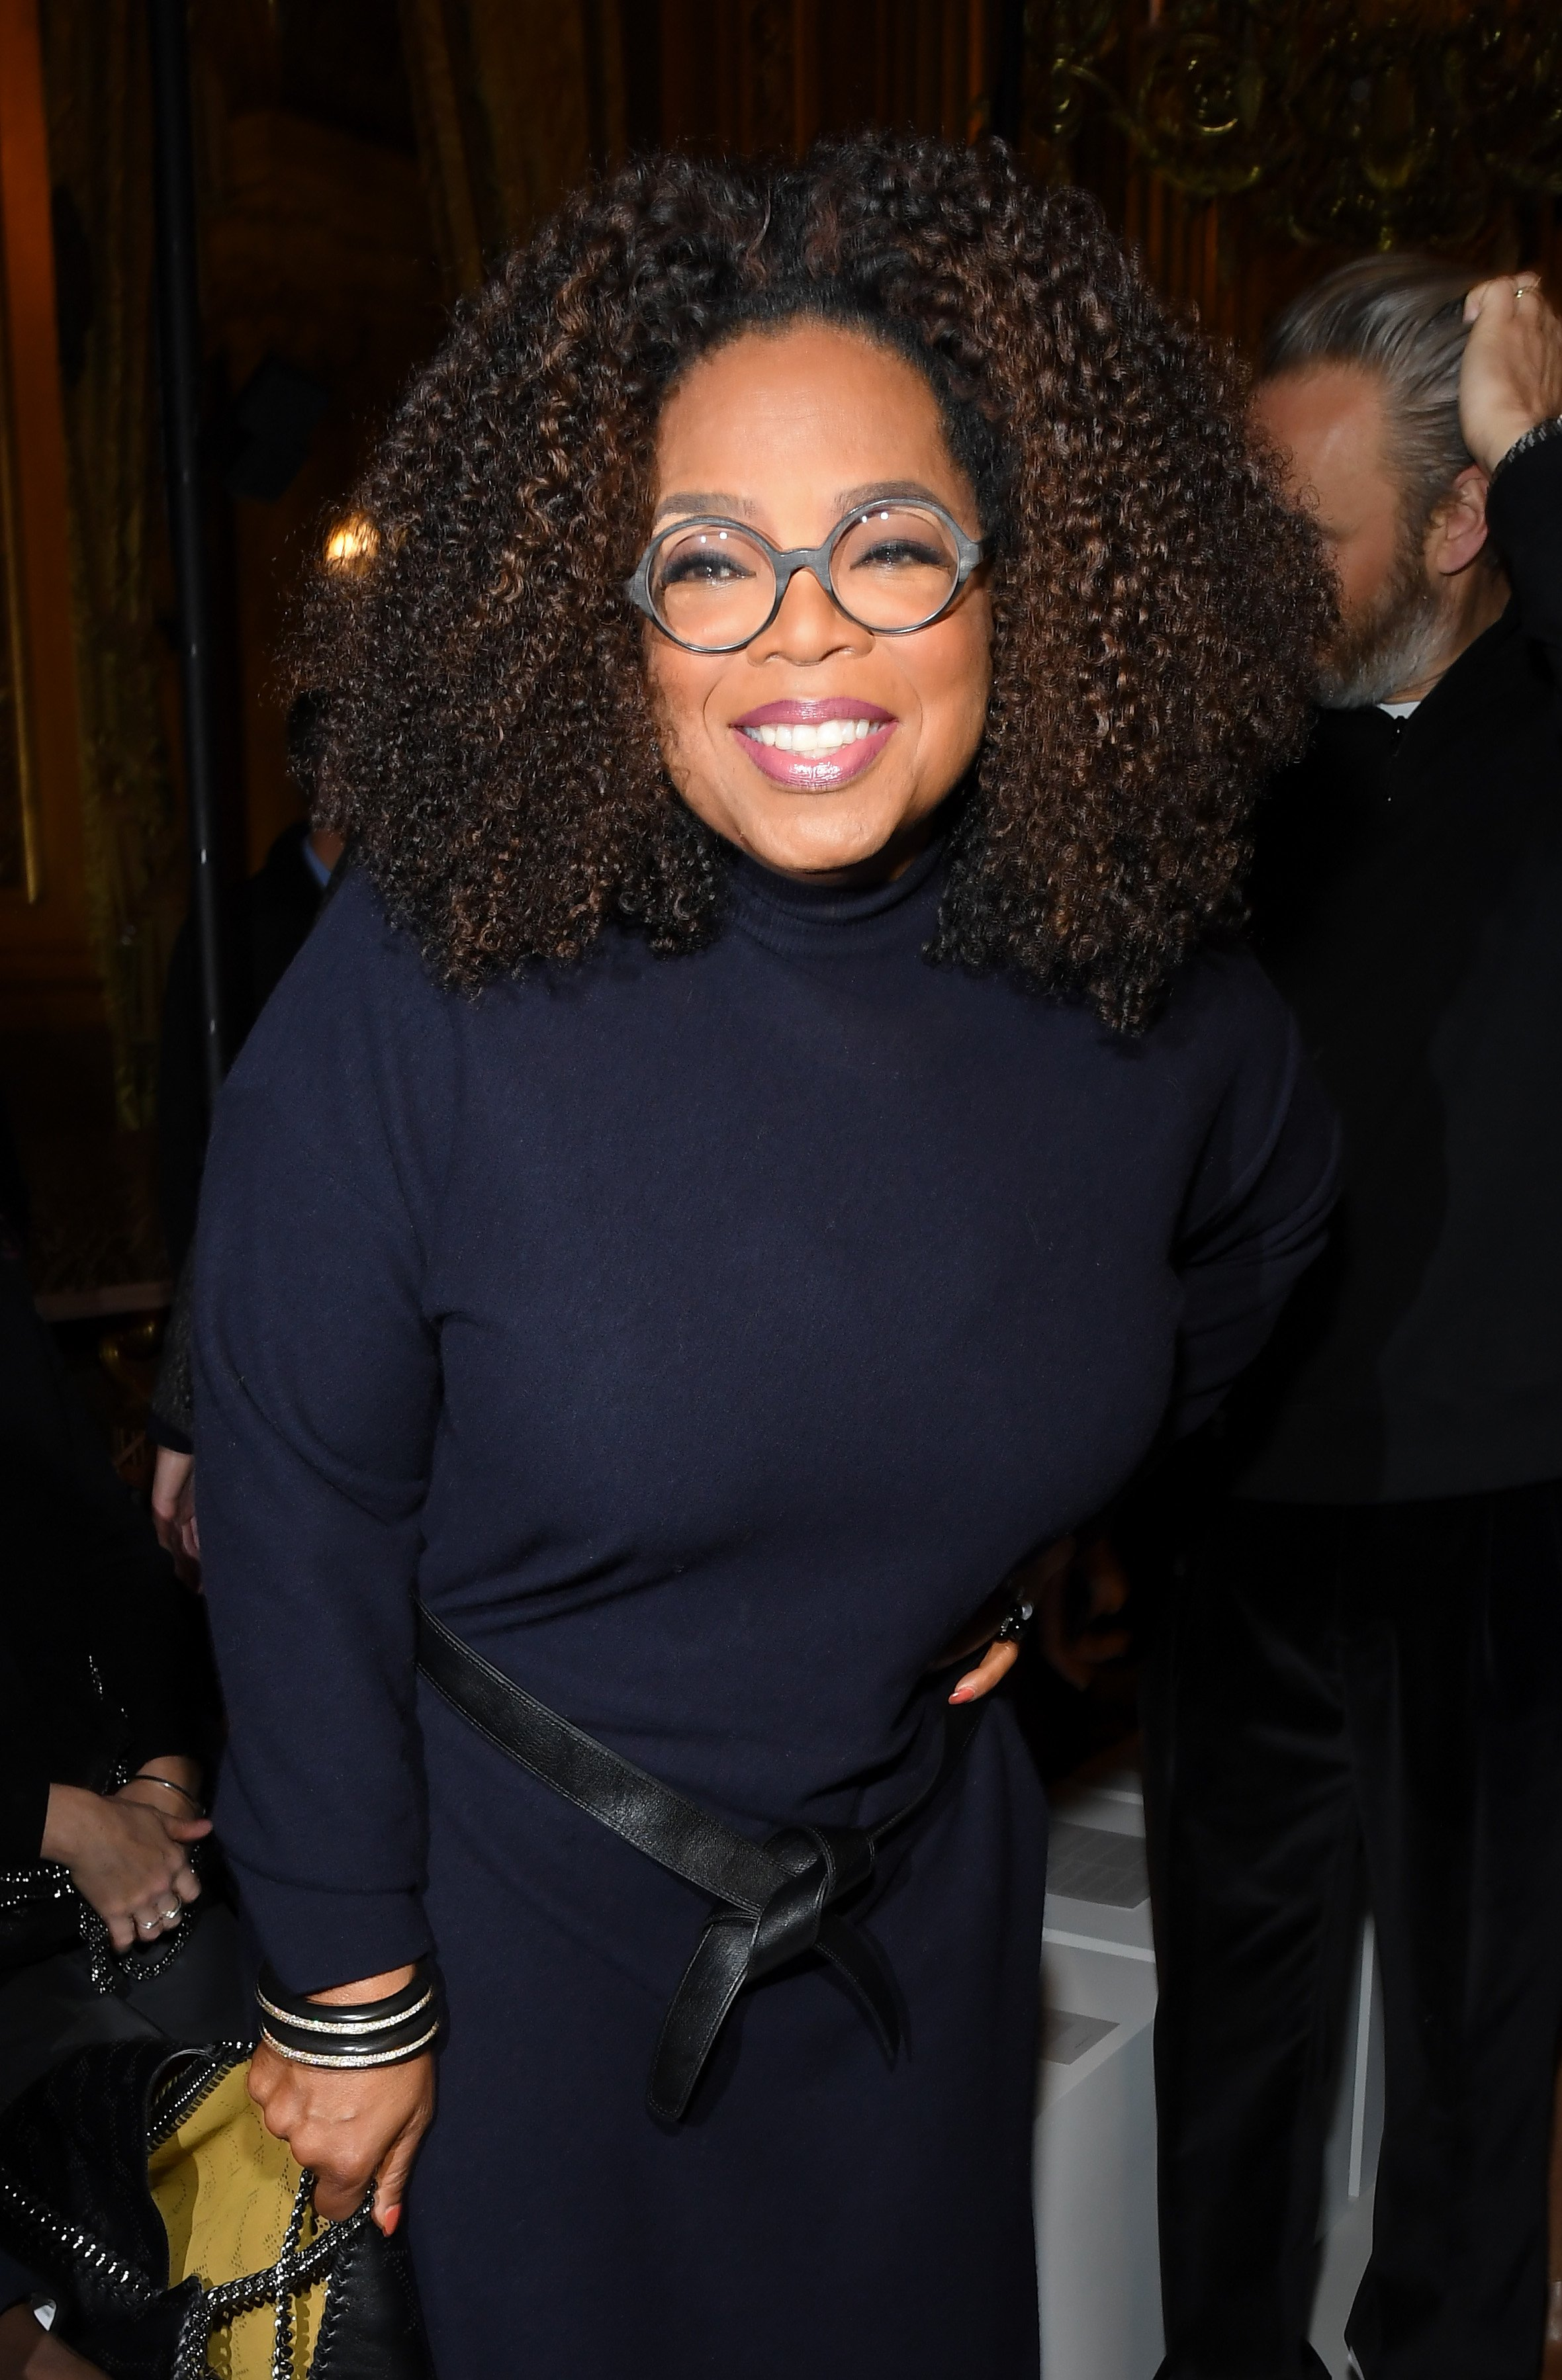 Oprah Winfrey attends the Stella McCartney show as part of the Paris Fashion Week Womenswear Fall/Winter 2019/2020 on March 04, 2019, in Paris, France. | Source: Getty Images.